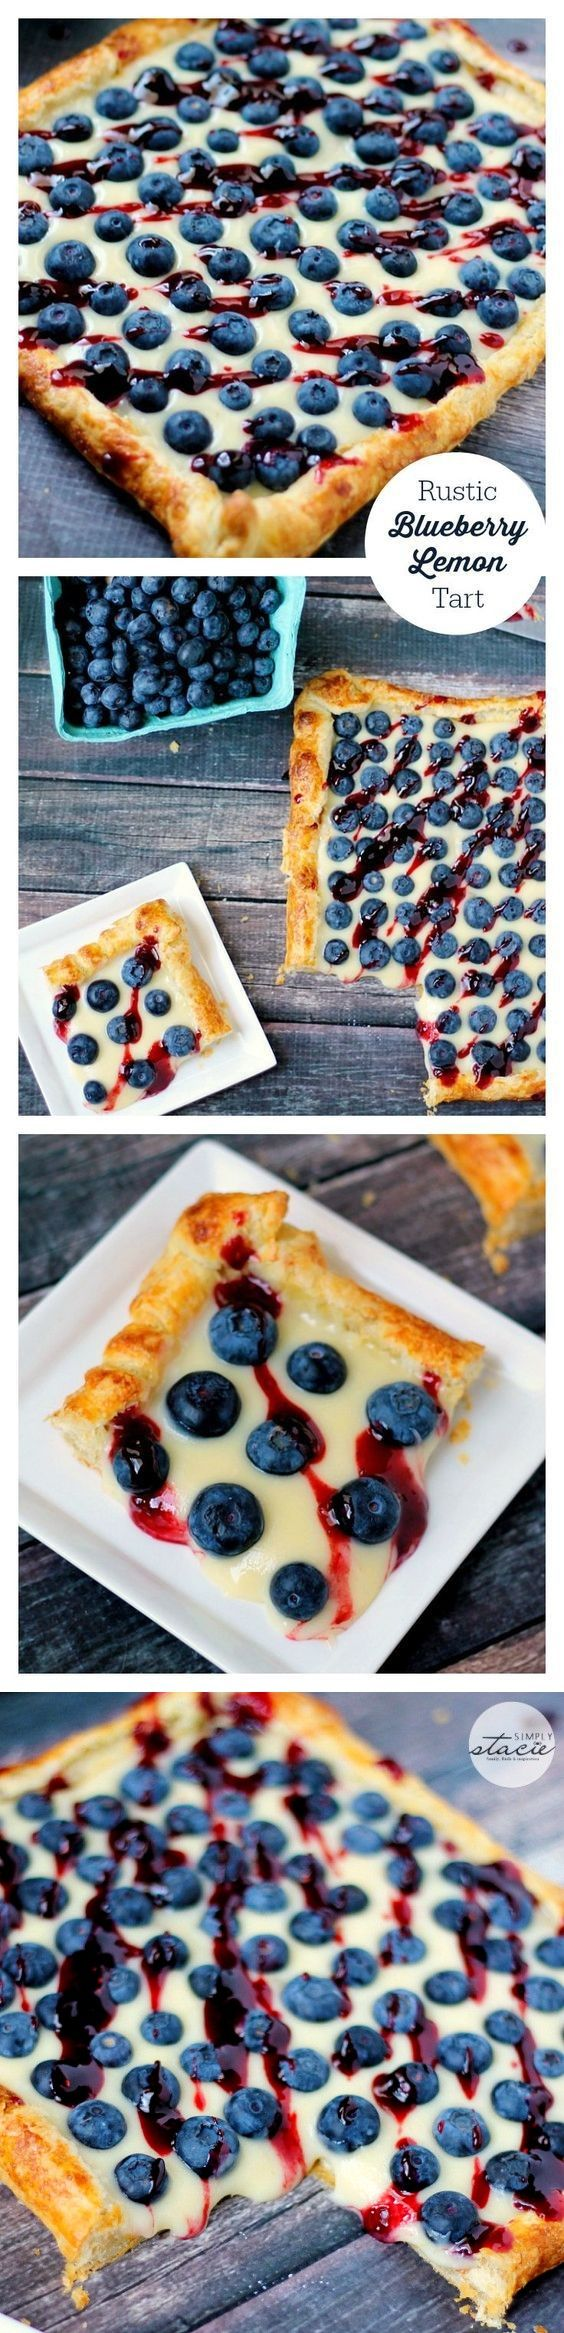 1 cup Blueberries. 1 Egg. 1/4 cup Berry preserves, mixed. 1 cup Lemon curd. 1 sheet Puff pastry dough. 1/4 cup Sugar. 4 oz Cream cheese. 2 tbsp Heavy cream.